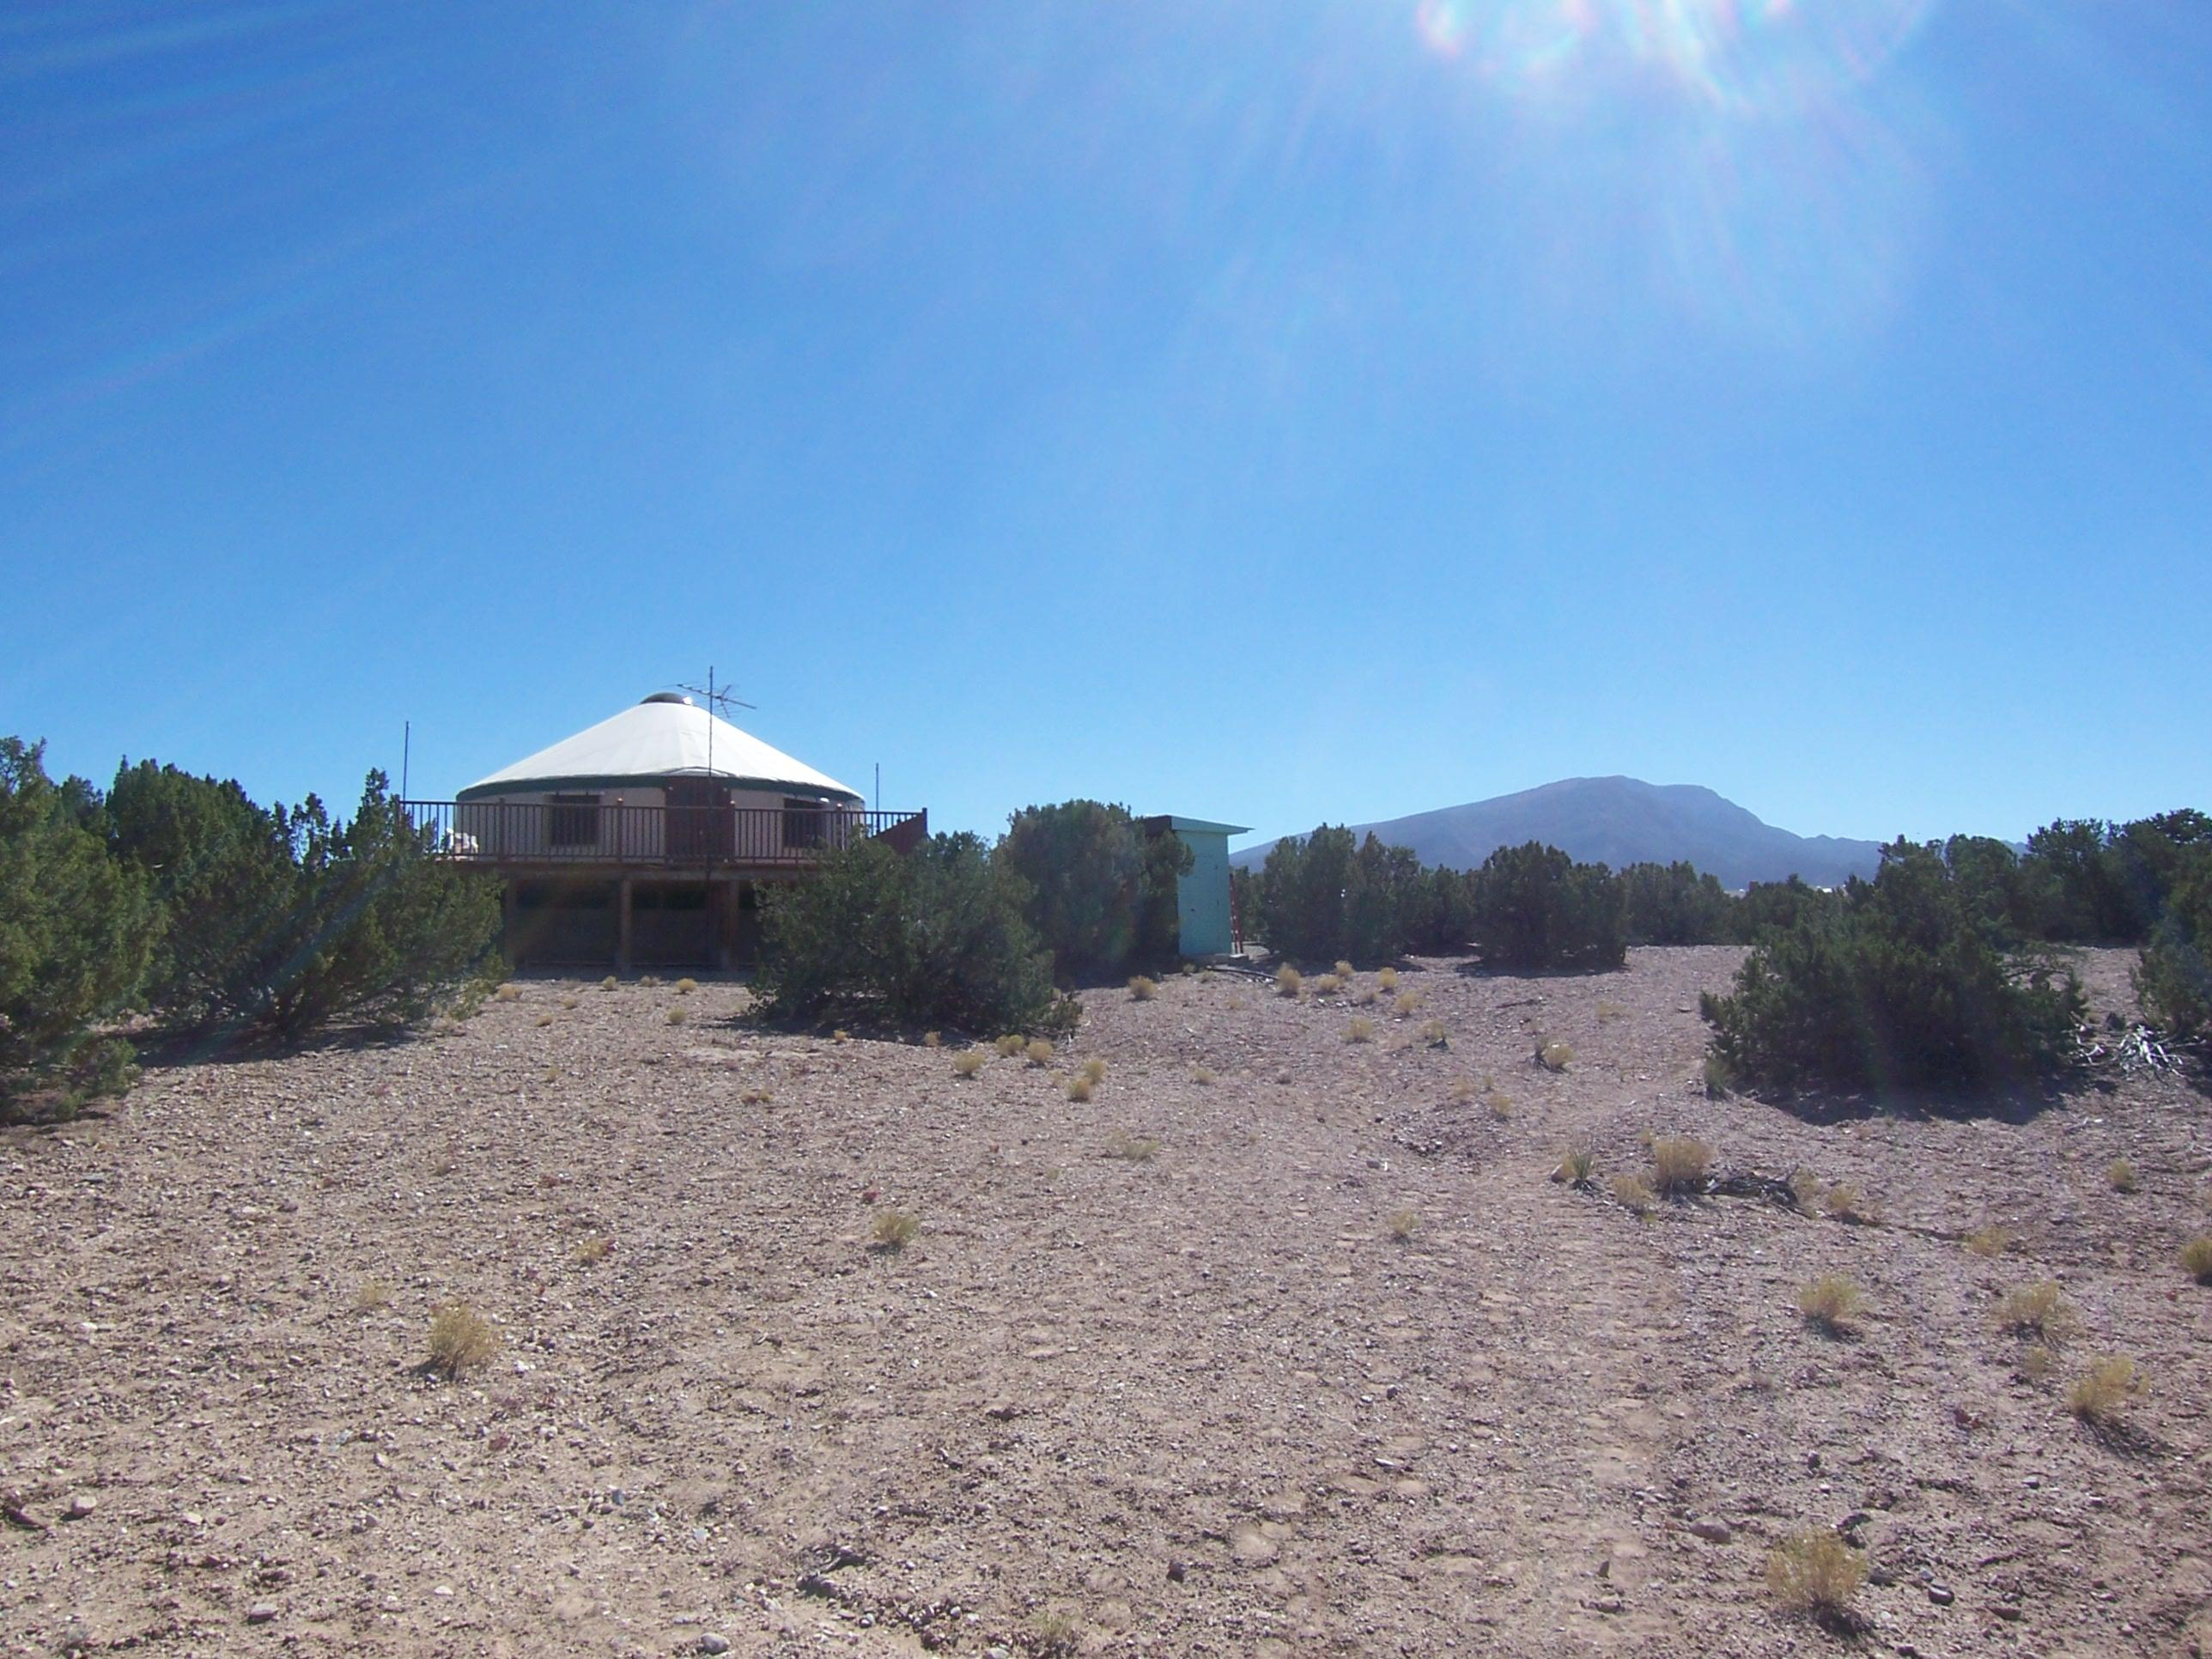 UNIQUE GETAWAY IN PLACITAS! YURT ON 3/4 ACRE NEXT TO THOUSANDS OF ACRES OF PUBLIC LAND! $69,000. A wonderful escape from the city that is just a 25 minute drive from Albuquerque! This property is bordered on the north & east by 3100 acres of Public Land! Plenty of room to build a permanent structure on this 3/4 acre! Dynamic structure with vaulted ceilings & skylight. This is one room that has the space for bdrm, kitchen, living & dining rm. Exterior building has composting toilet & shower rm. Beautiful deck to enjoy the serene views! Owners will consider short term REC with $15,000 down at 5% interest. Owners have an additional 3/4 acre lot (adjacent to the southwest) that they will sell for $50,000. Electric line run to the yurt is temporary, as the yurt is just a temporary structure.